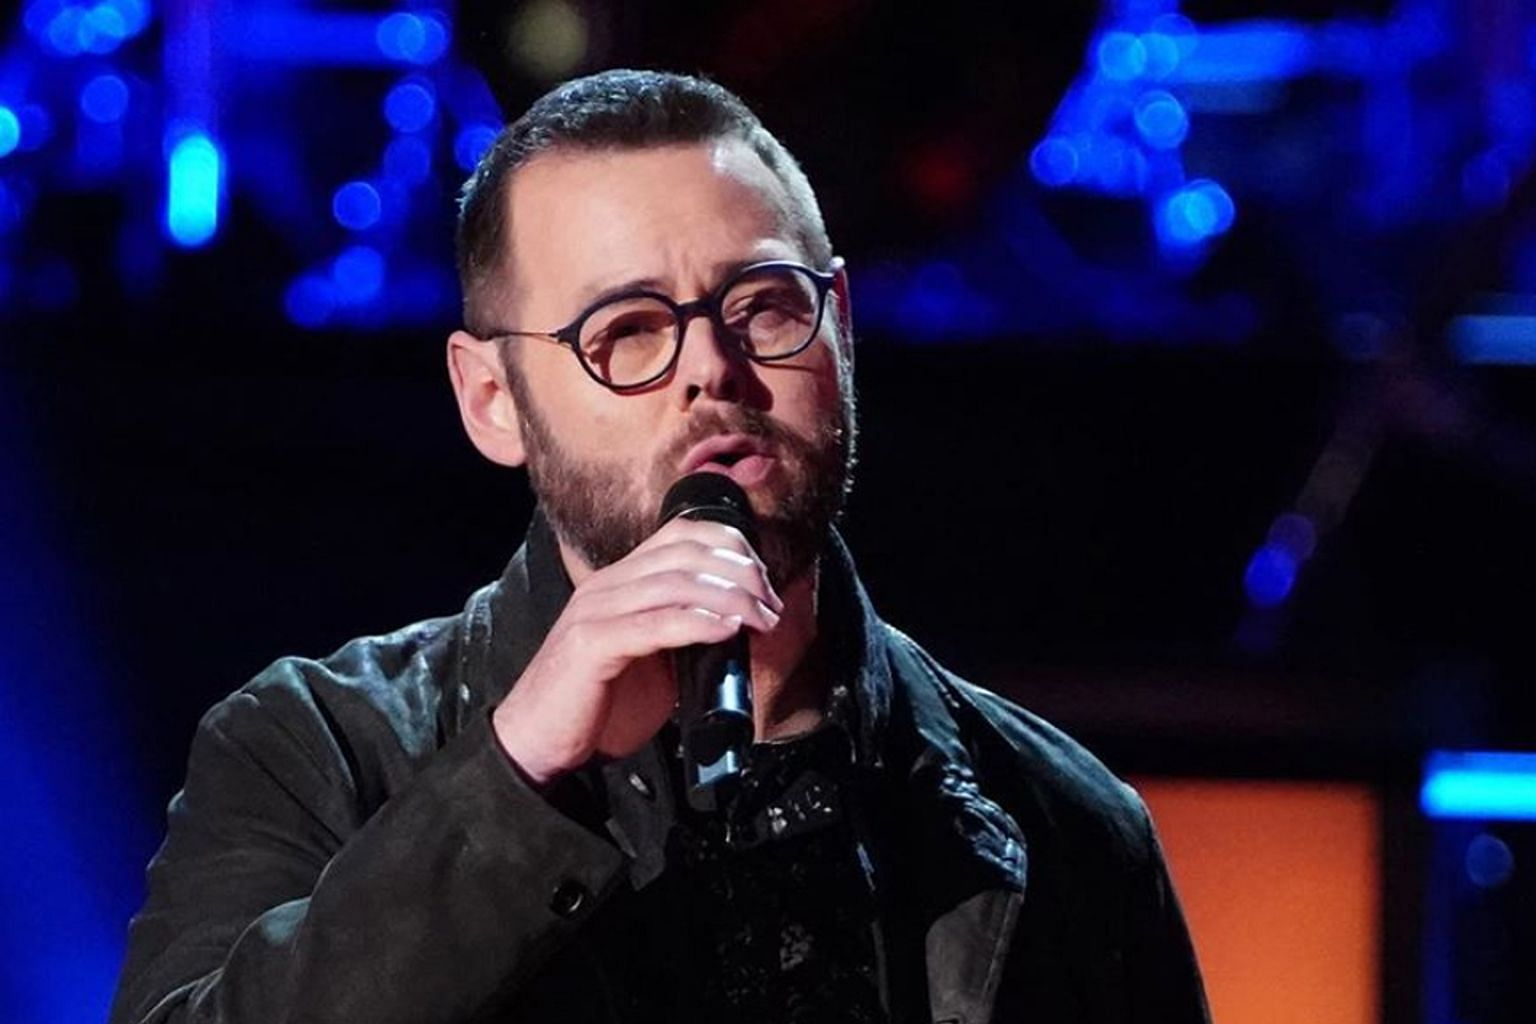 Newly crowned The Voice winner Todd Tilghman (above) plans to spend part of his US$100,000 prize money on a trip to Disney World for his family.